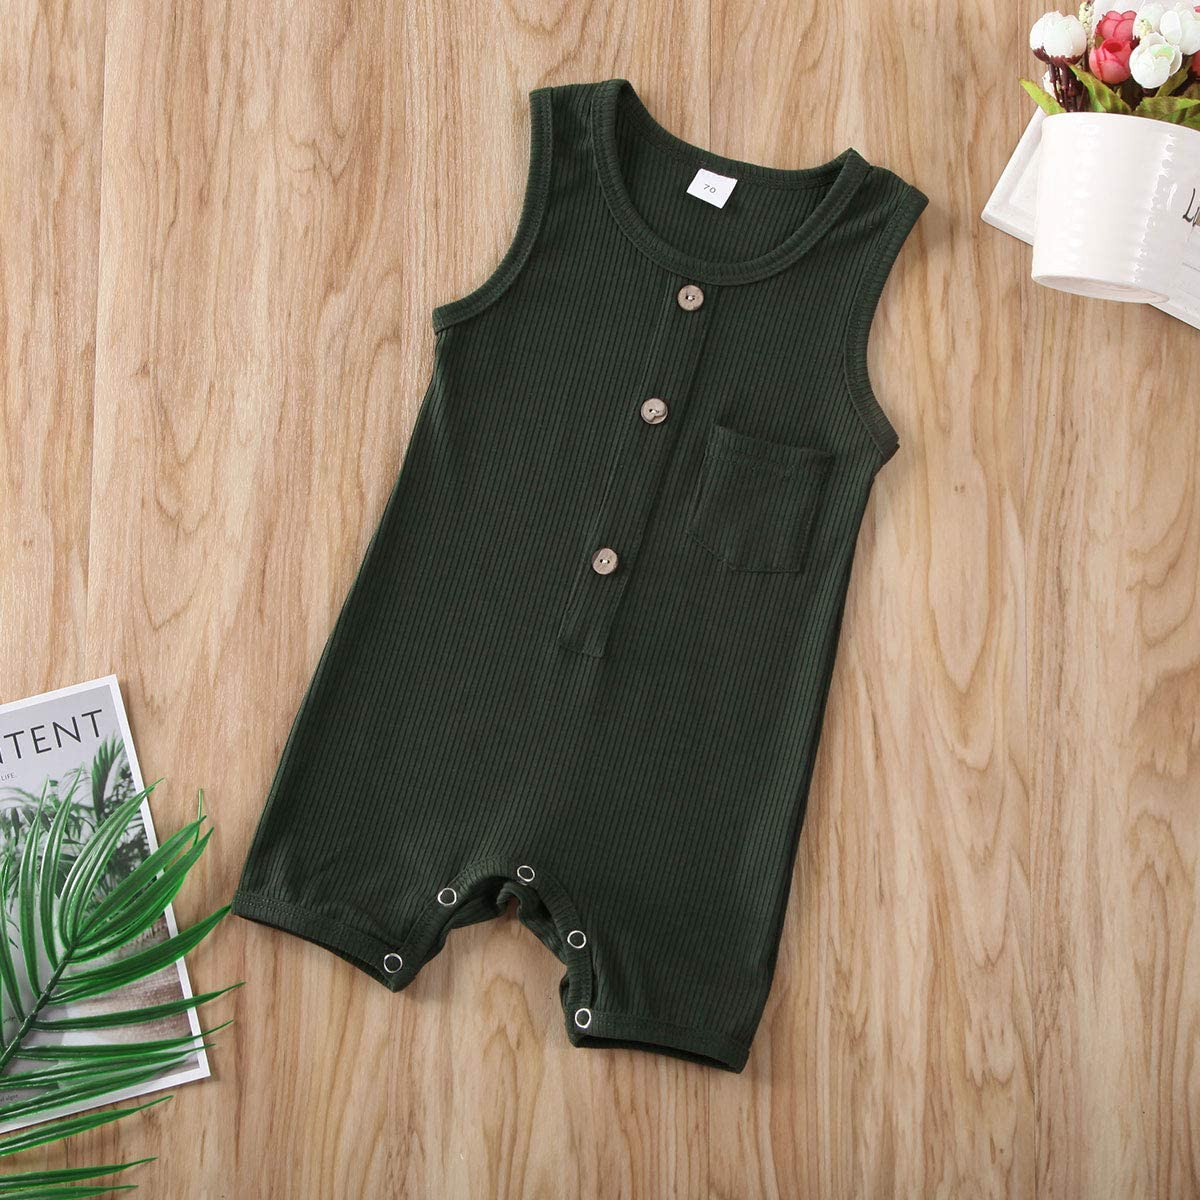 Lefyira Unisex Baby Sleeveless Rompers Jumpsuit Solid Color Button Front Bodysuit Outfit Clothes